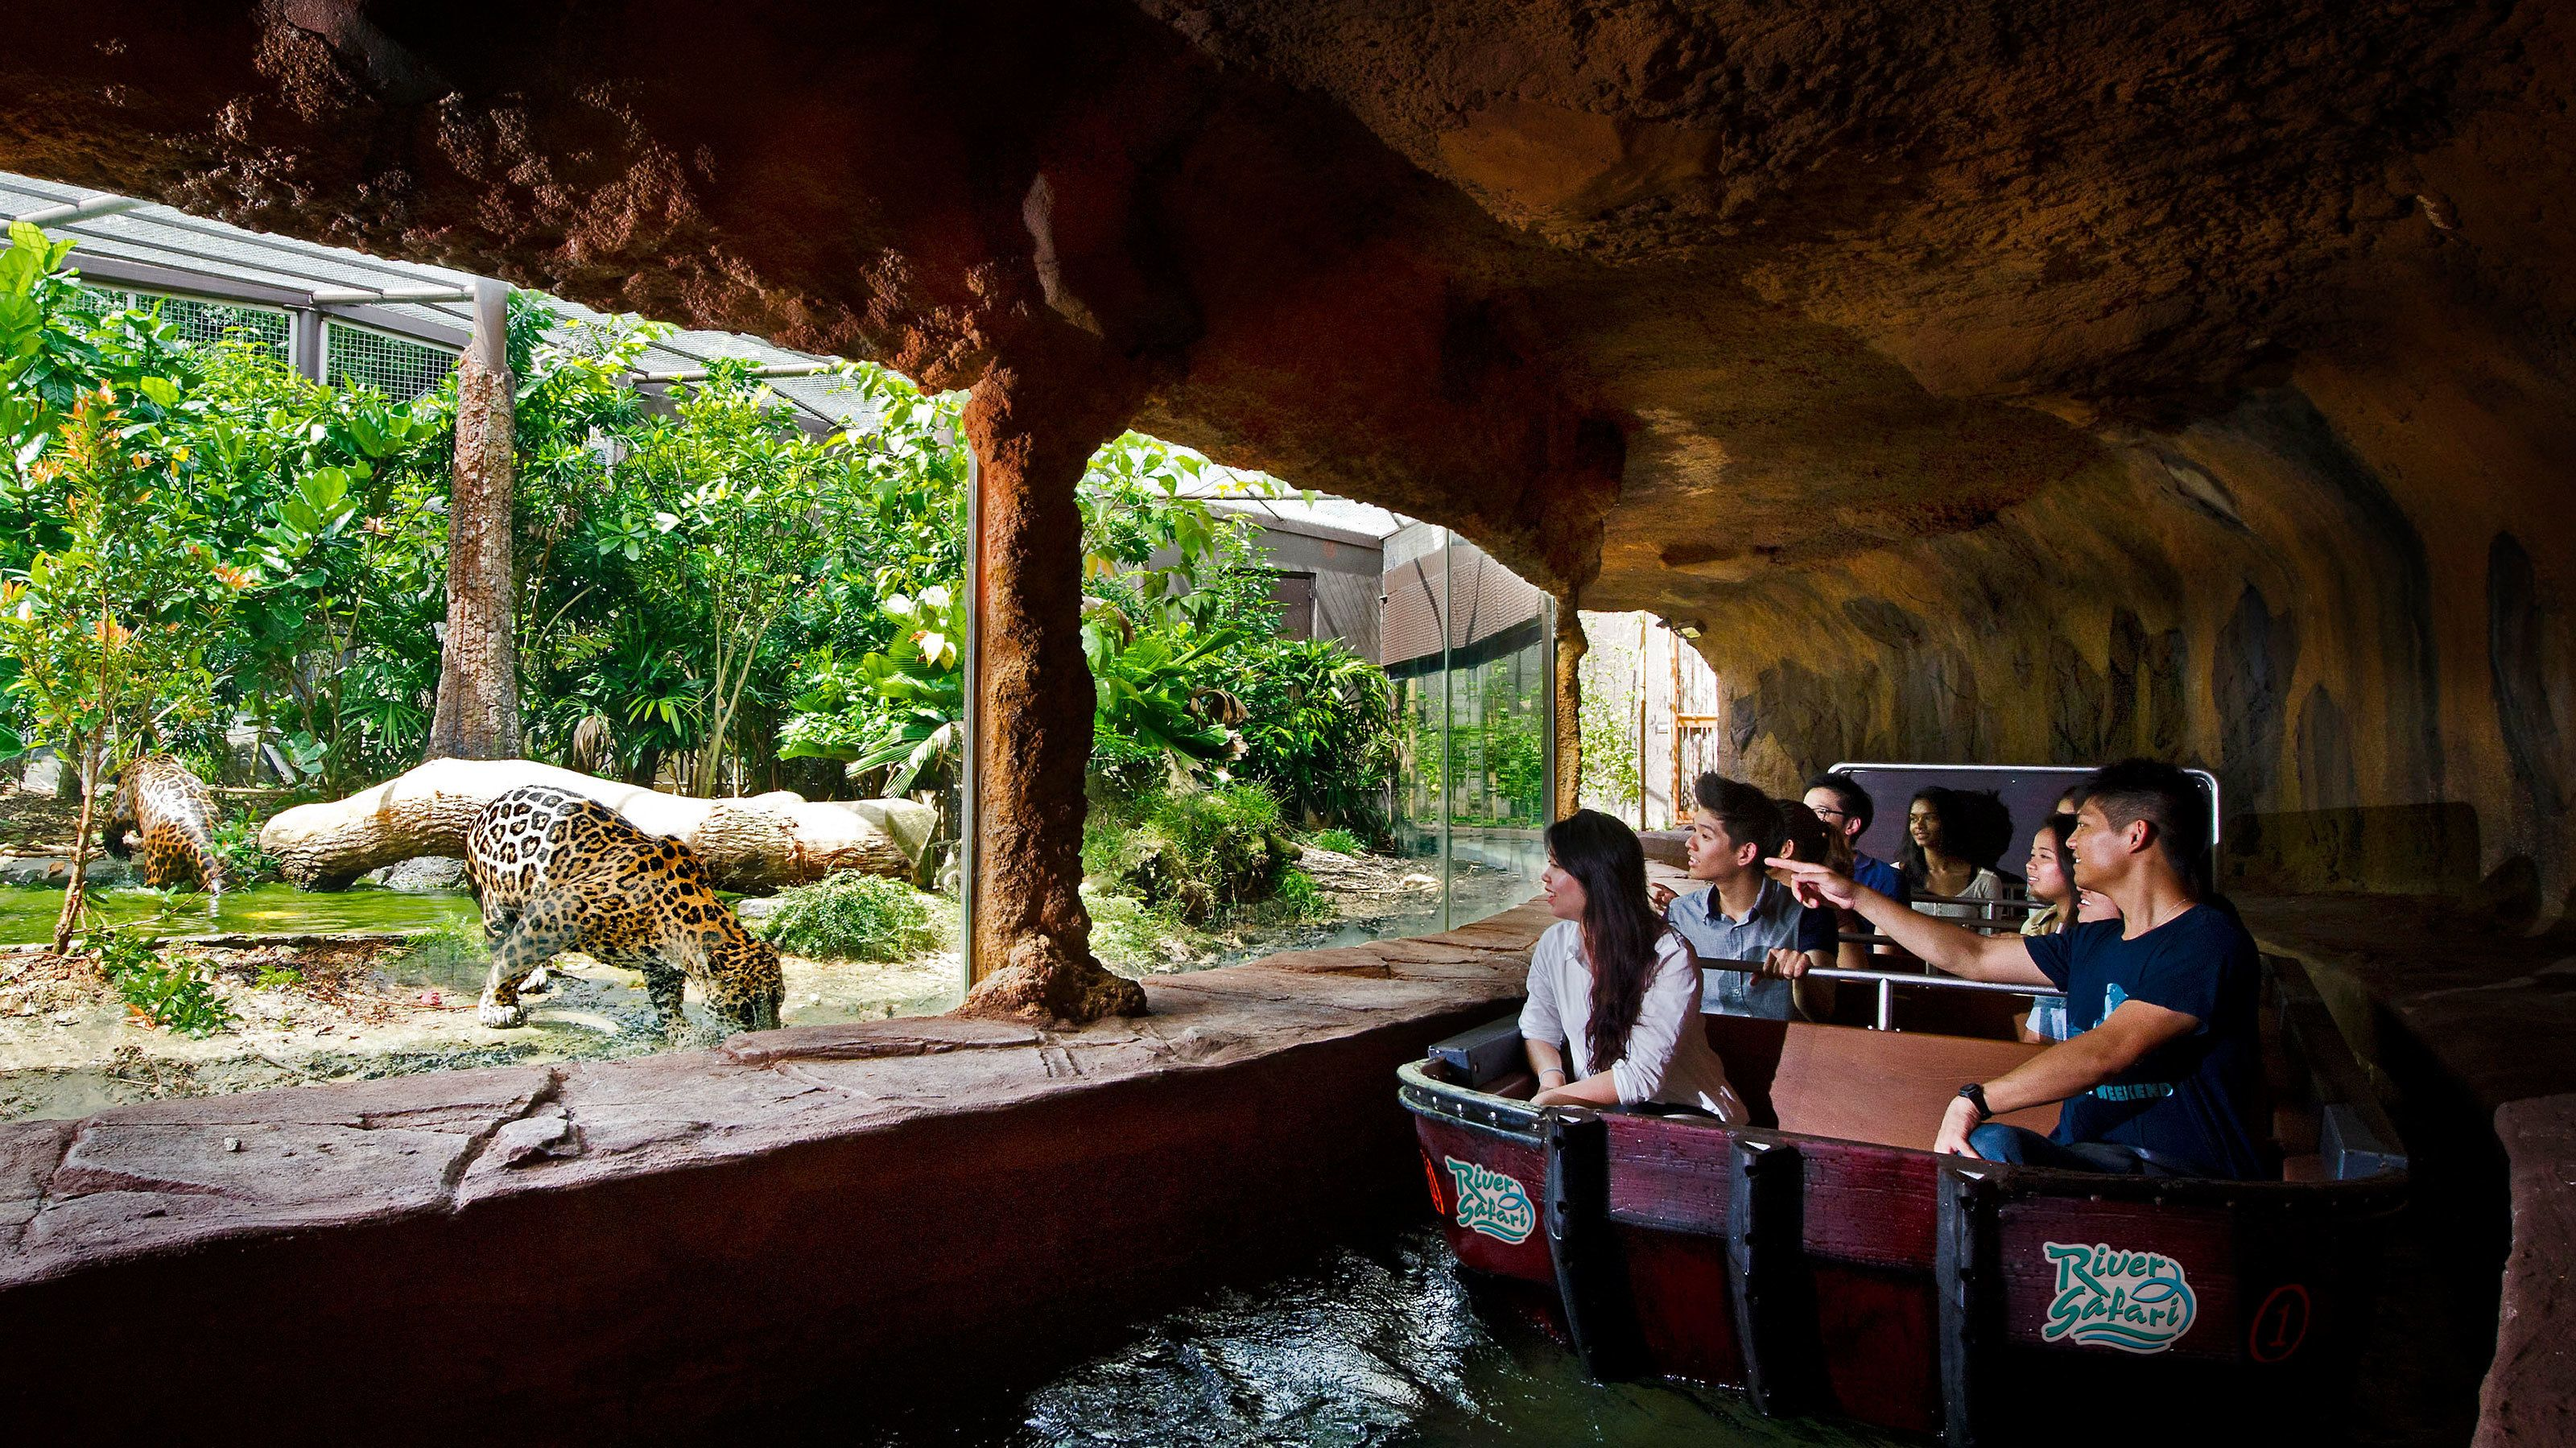 River Safari Ticket with Transfer